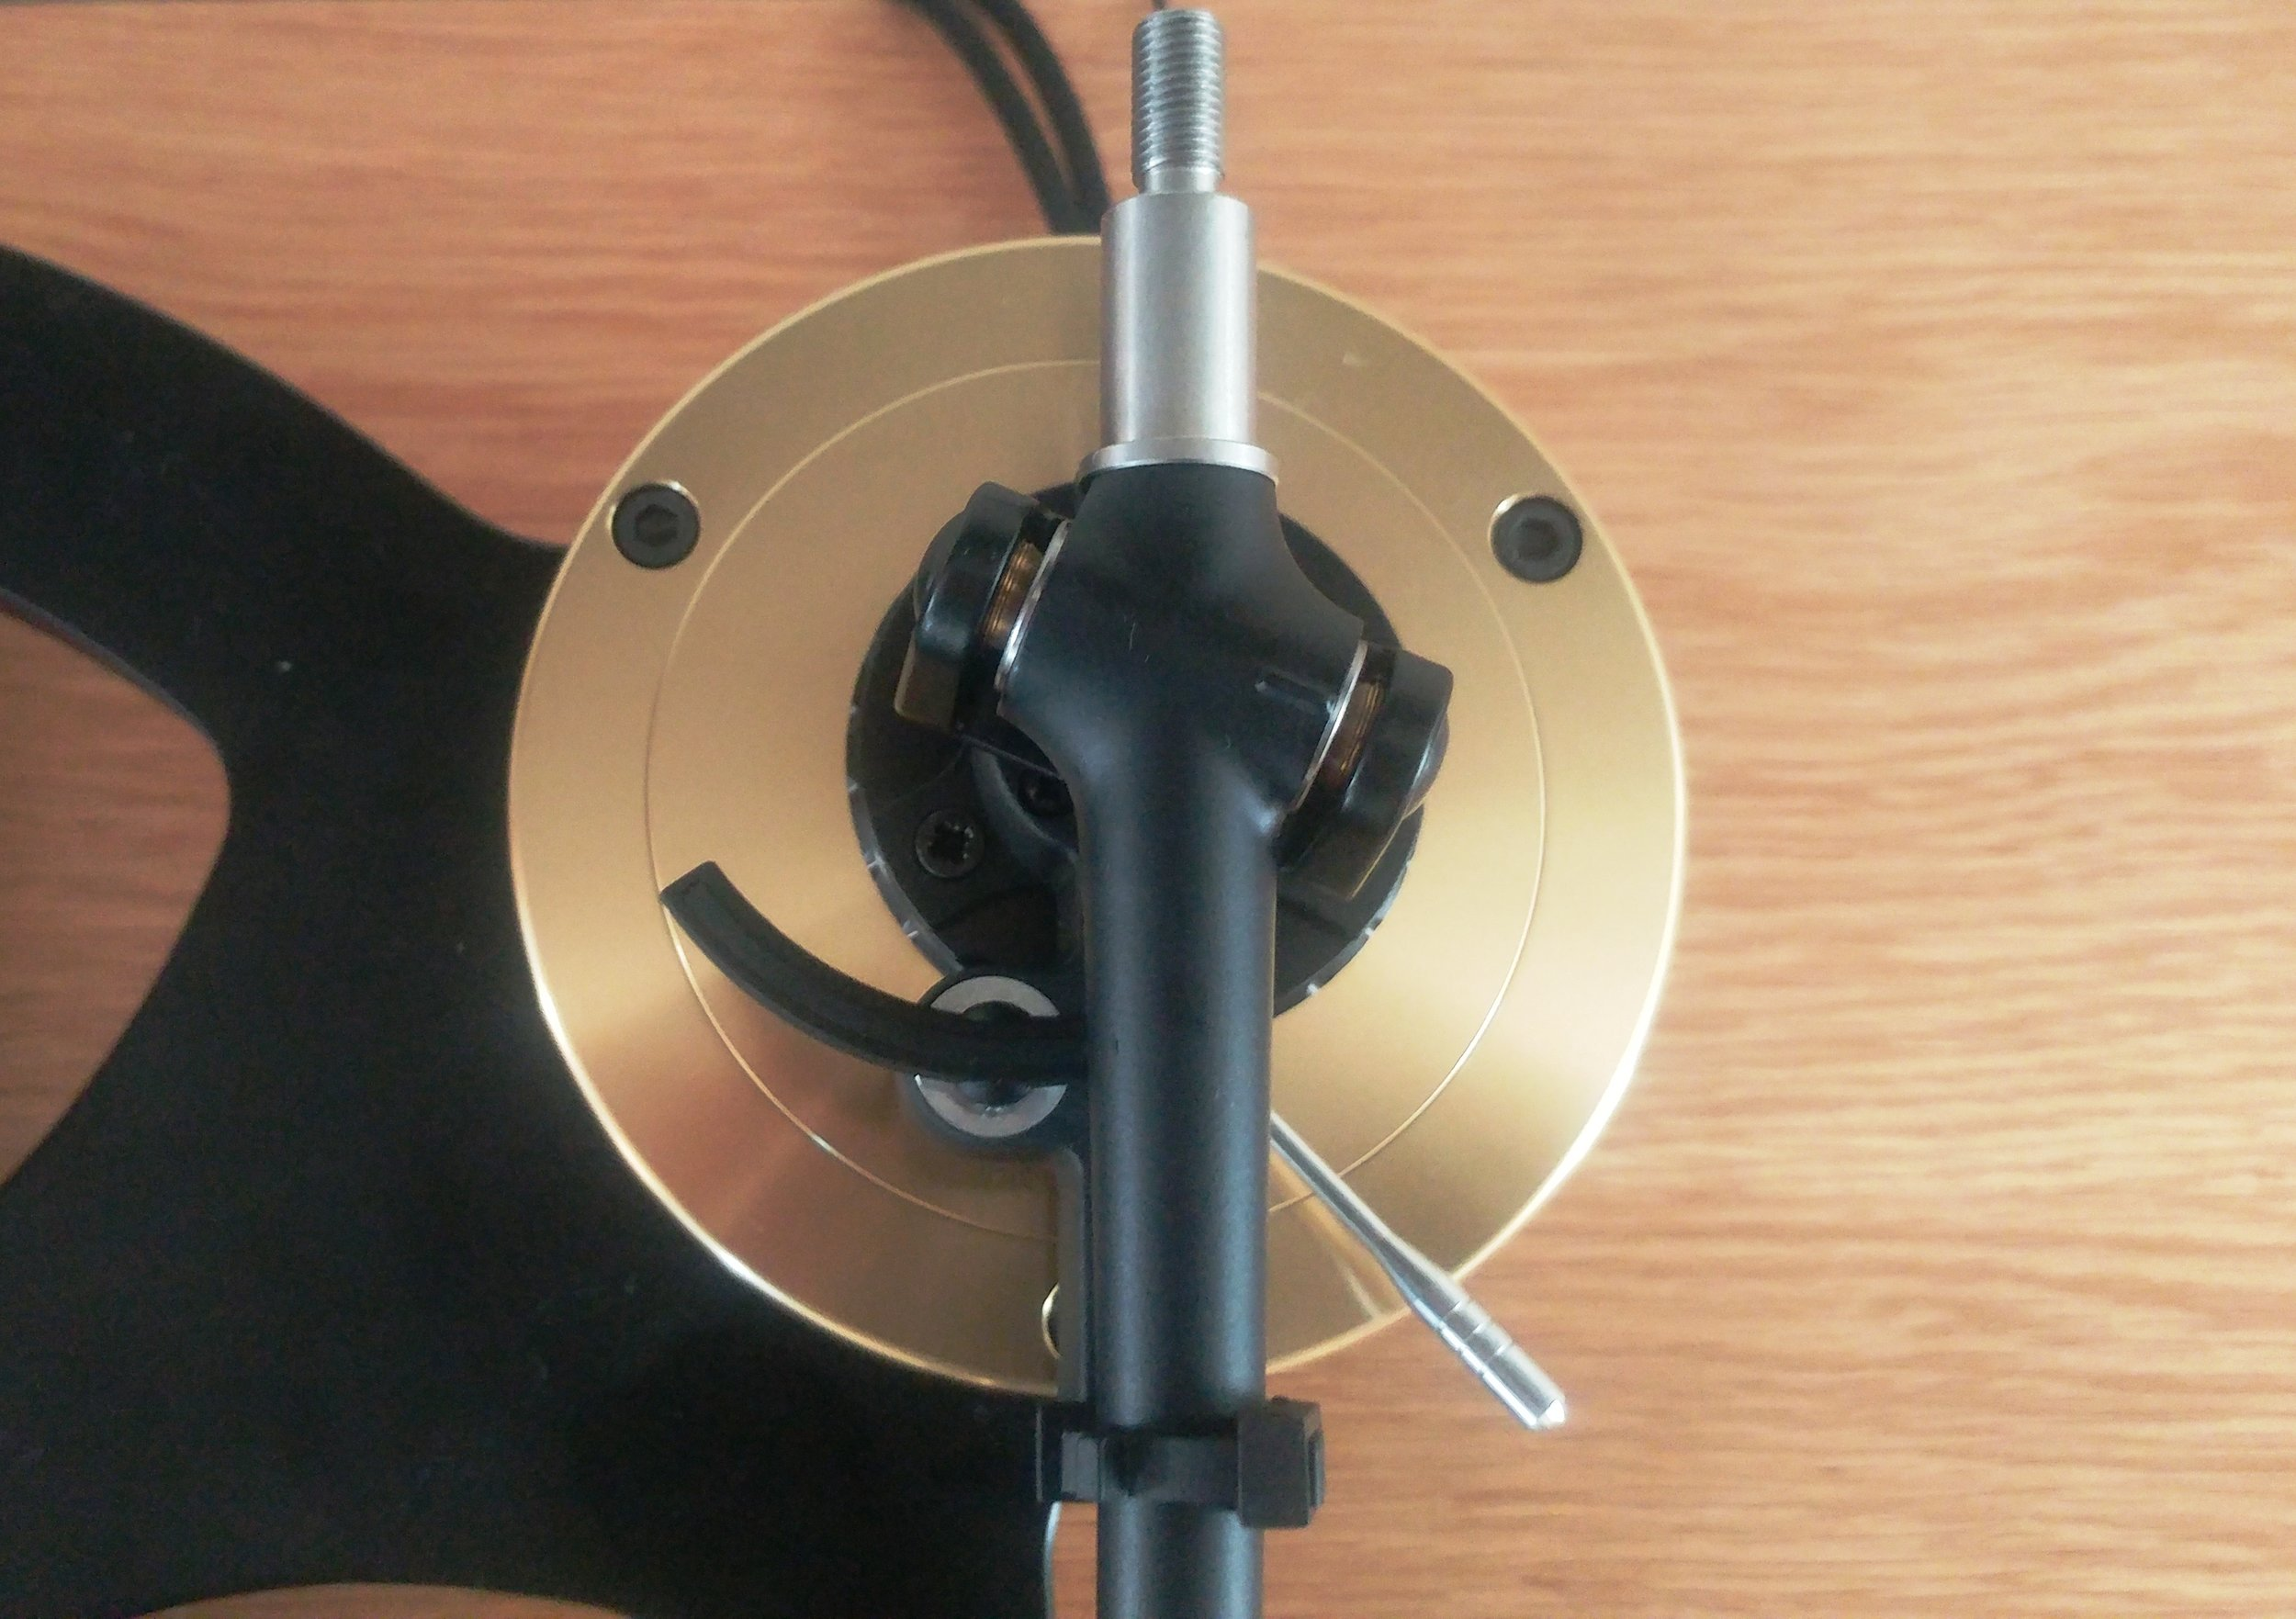 Tonearm mount from top